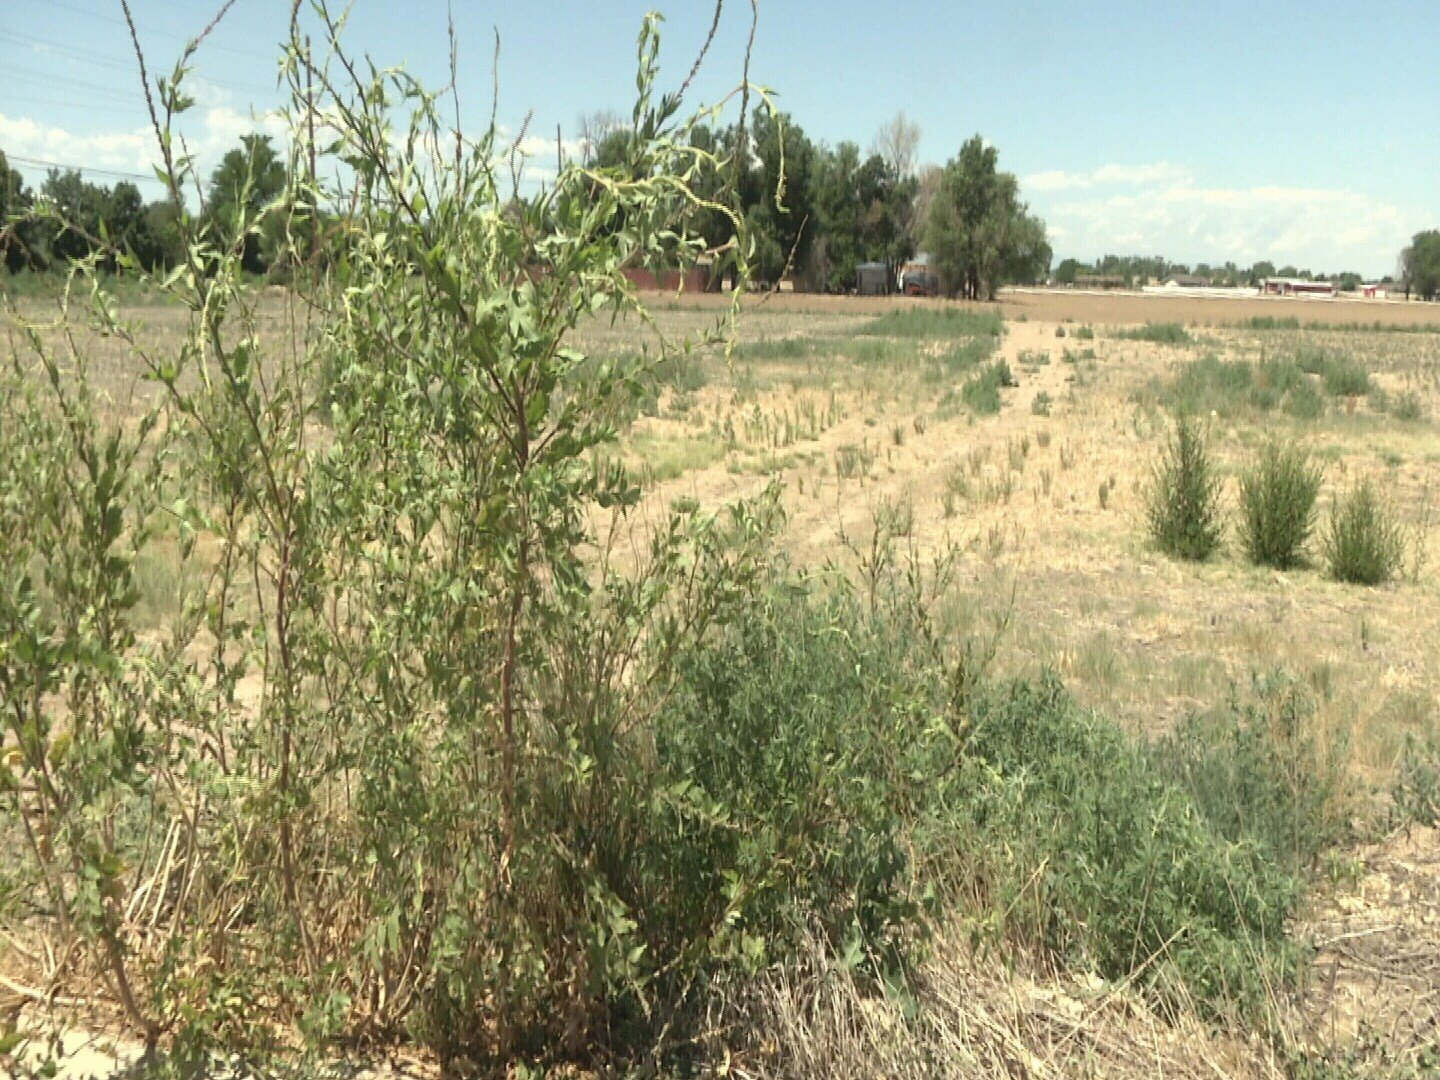 Pueblo County Commissioners are considering an ordinance requiring land owners in unincorporated parts of the County to remove any weeds or brush that are greater than 9 inches tall